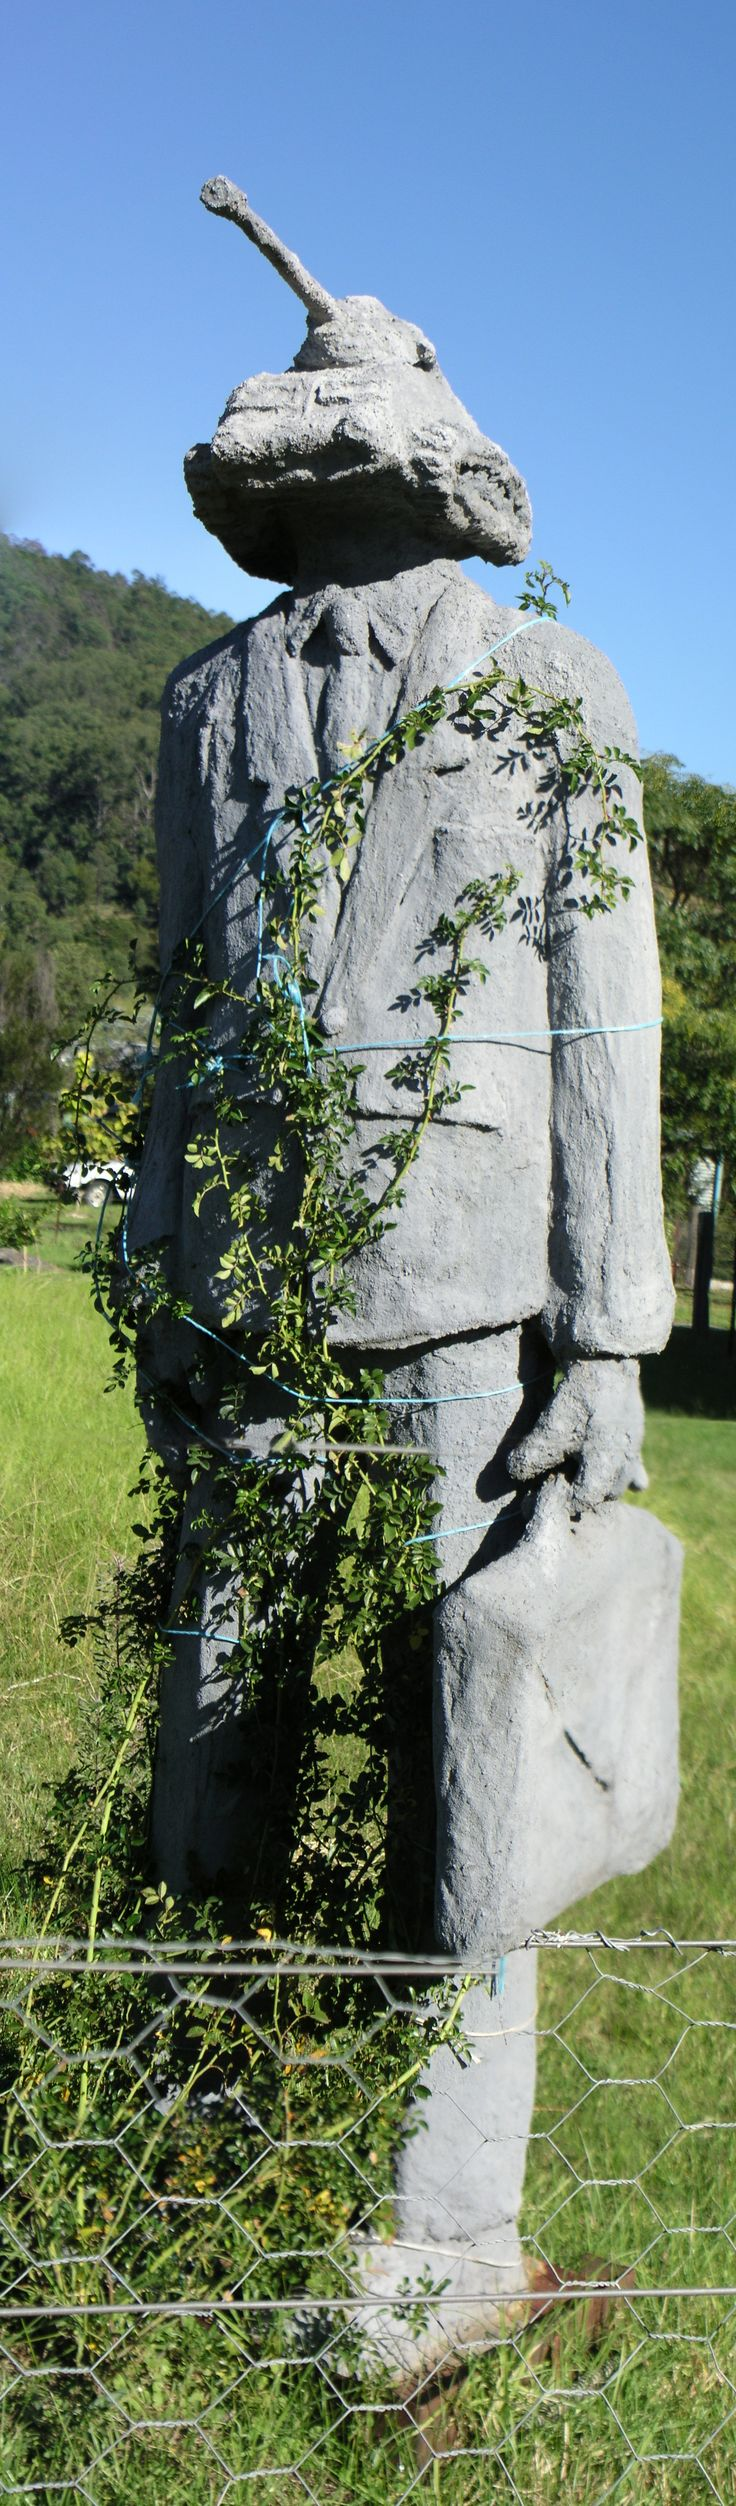 A sculpture in Cobargo, on the south coast of New South Wales, Australia